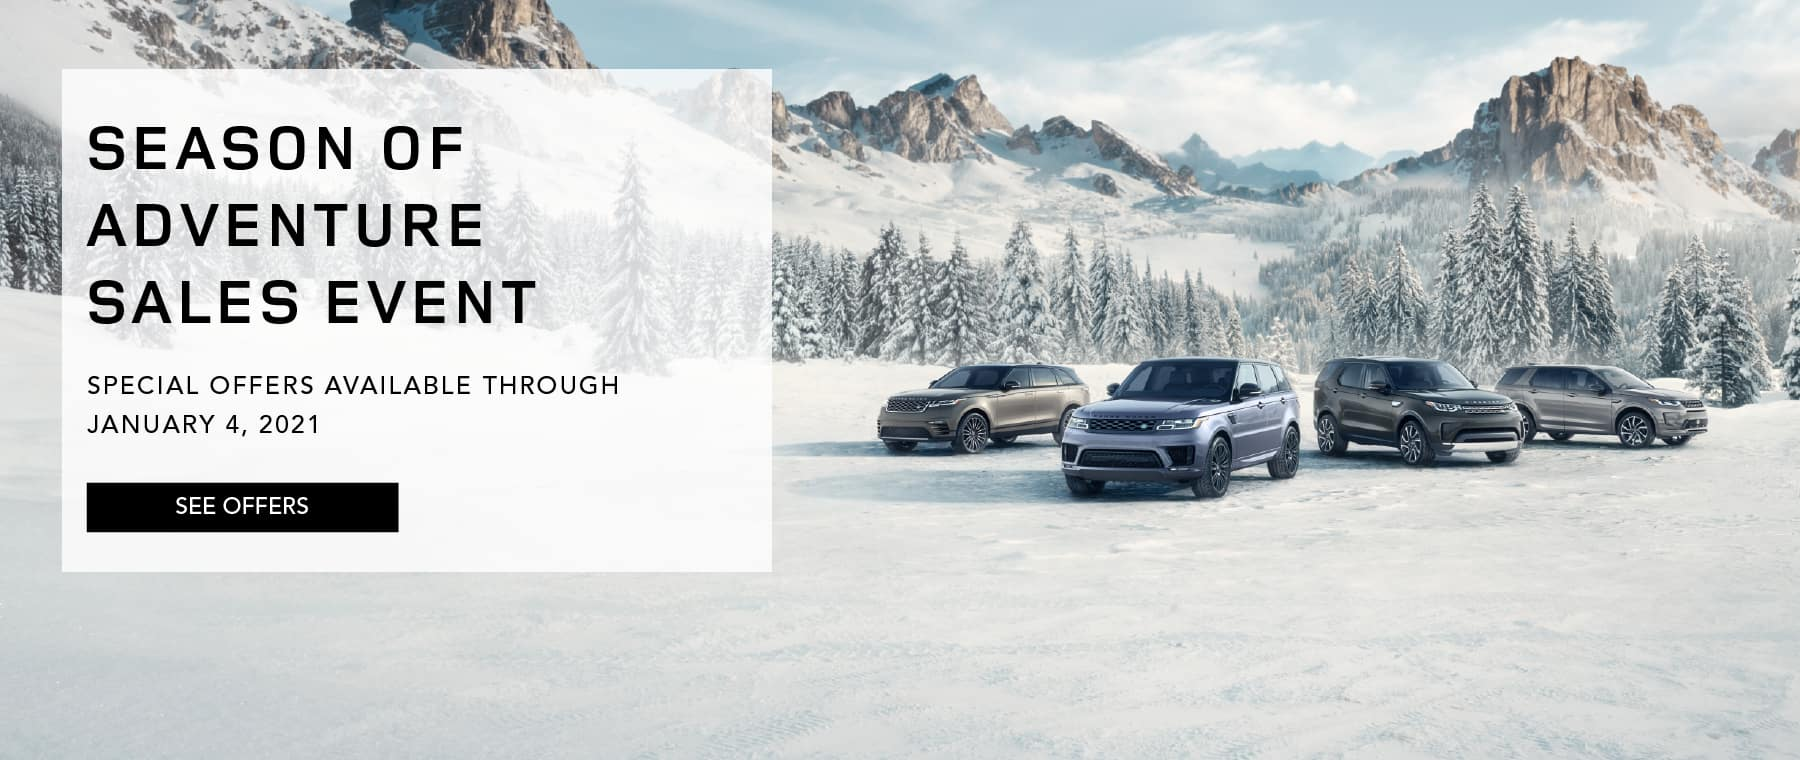 SEASON OF ADVENTURE SALES EVENT. SPECIALS OFFERS AVAILABLE THROUGH JANUARY 4, 2021. SEE OFFERS. IMAGE FEATURES LAND ROVER FLEET OF VEHICLES IN SNOW COVERED VALLEY.